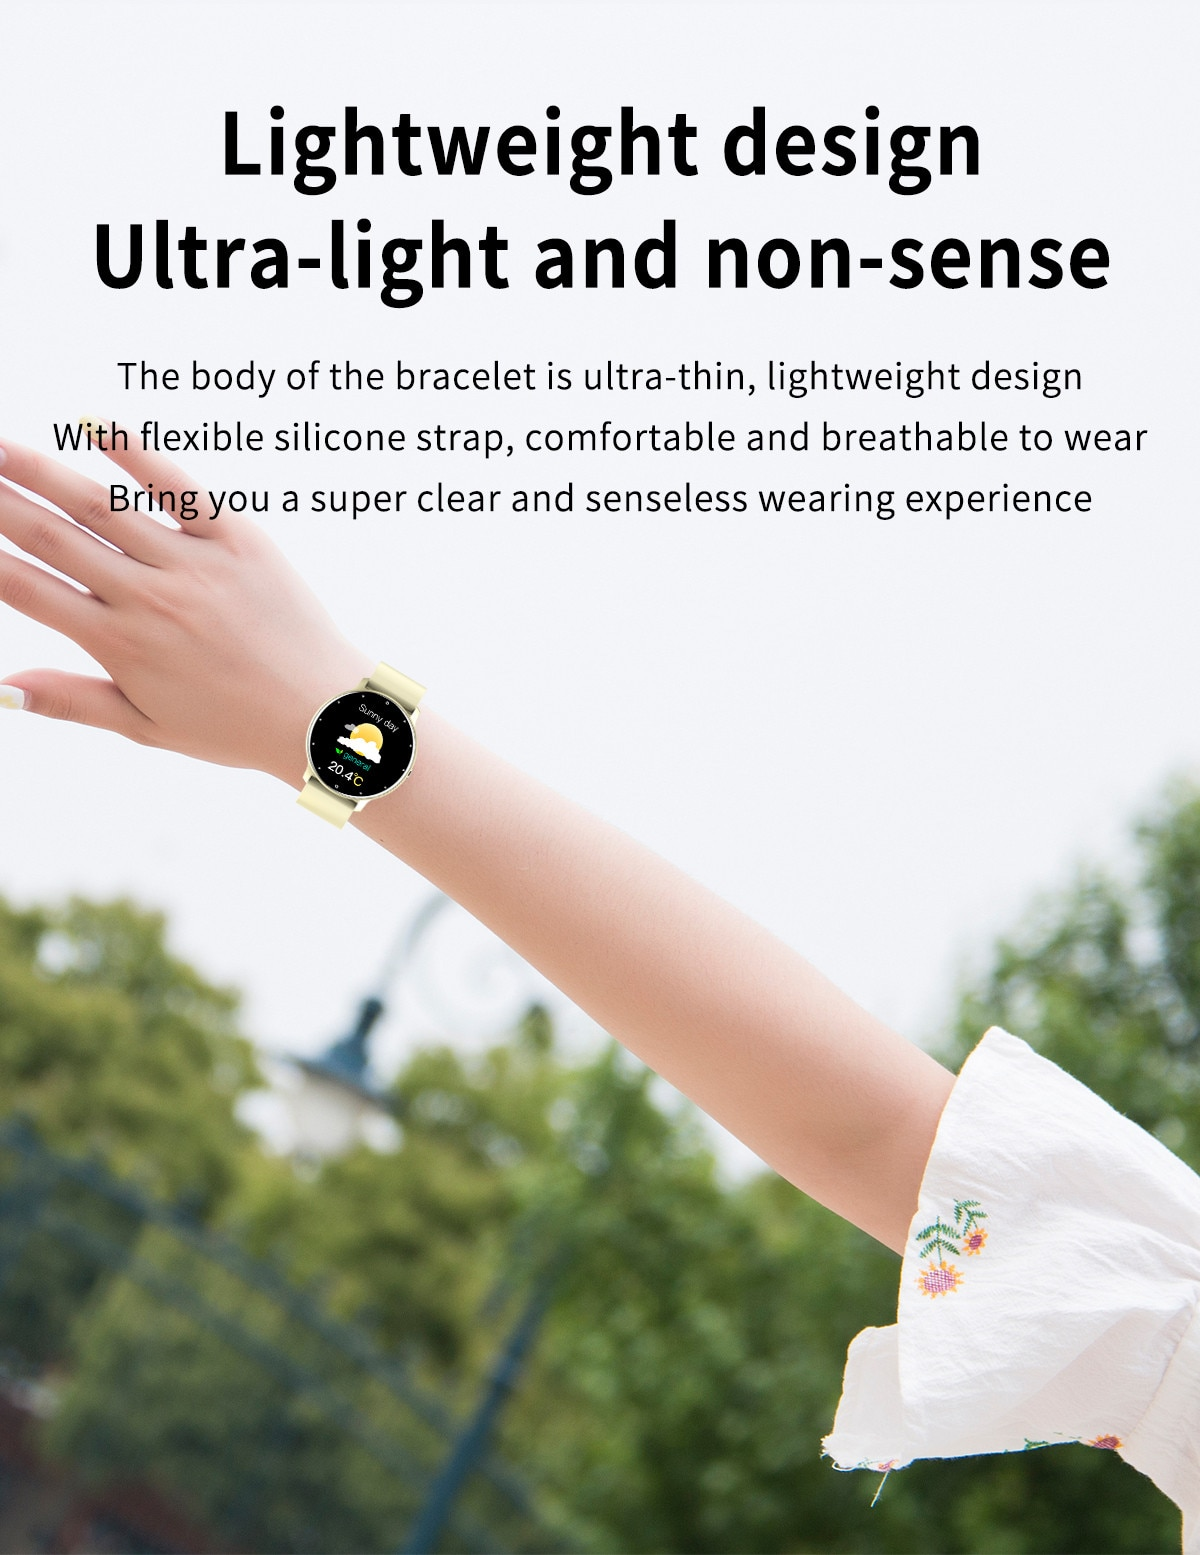 H19f98c88089f4a37a8140362986a933bK - LIGE 2021 New Men Smart Watch Real-time Activity Tracker Heart Rate Monitor Sports Women Smart Watch Men Clock For Android IOS